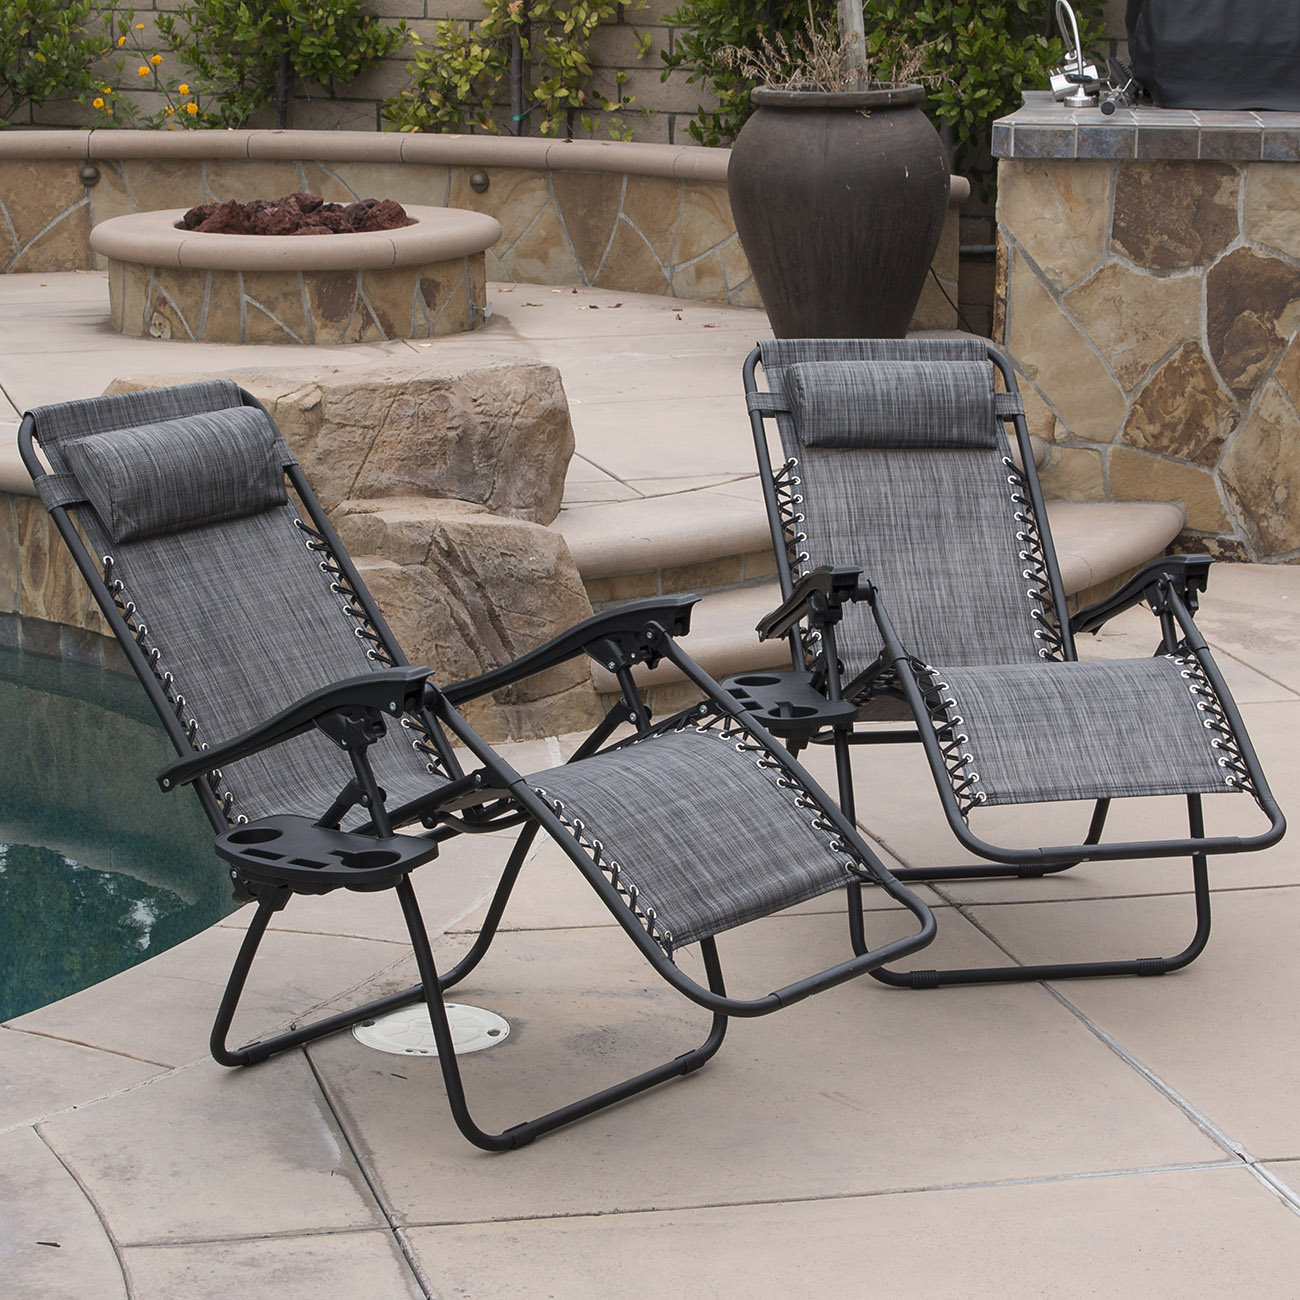 2 Lounge Chair Outdoor Zero Gravity Beach Patio Pool Yard Folding Recliner Gray : recliner lounge chairs - islam-shia.org